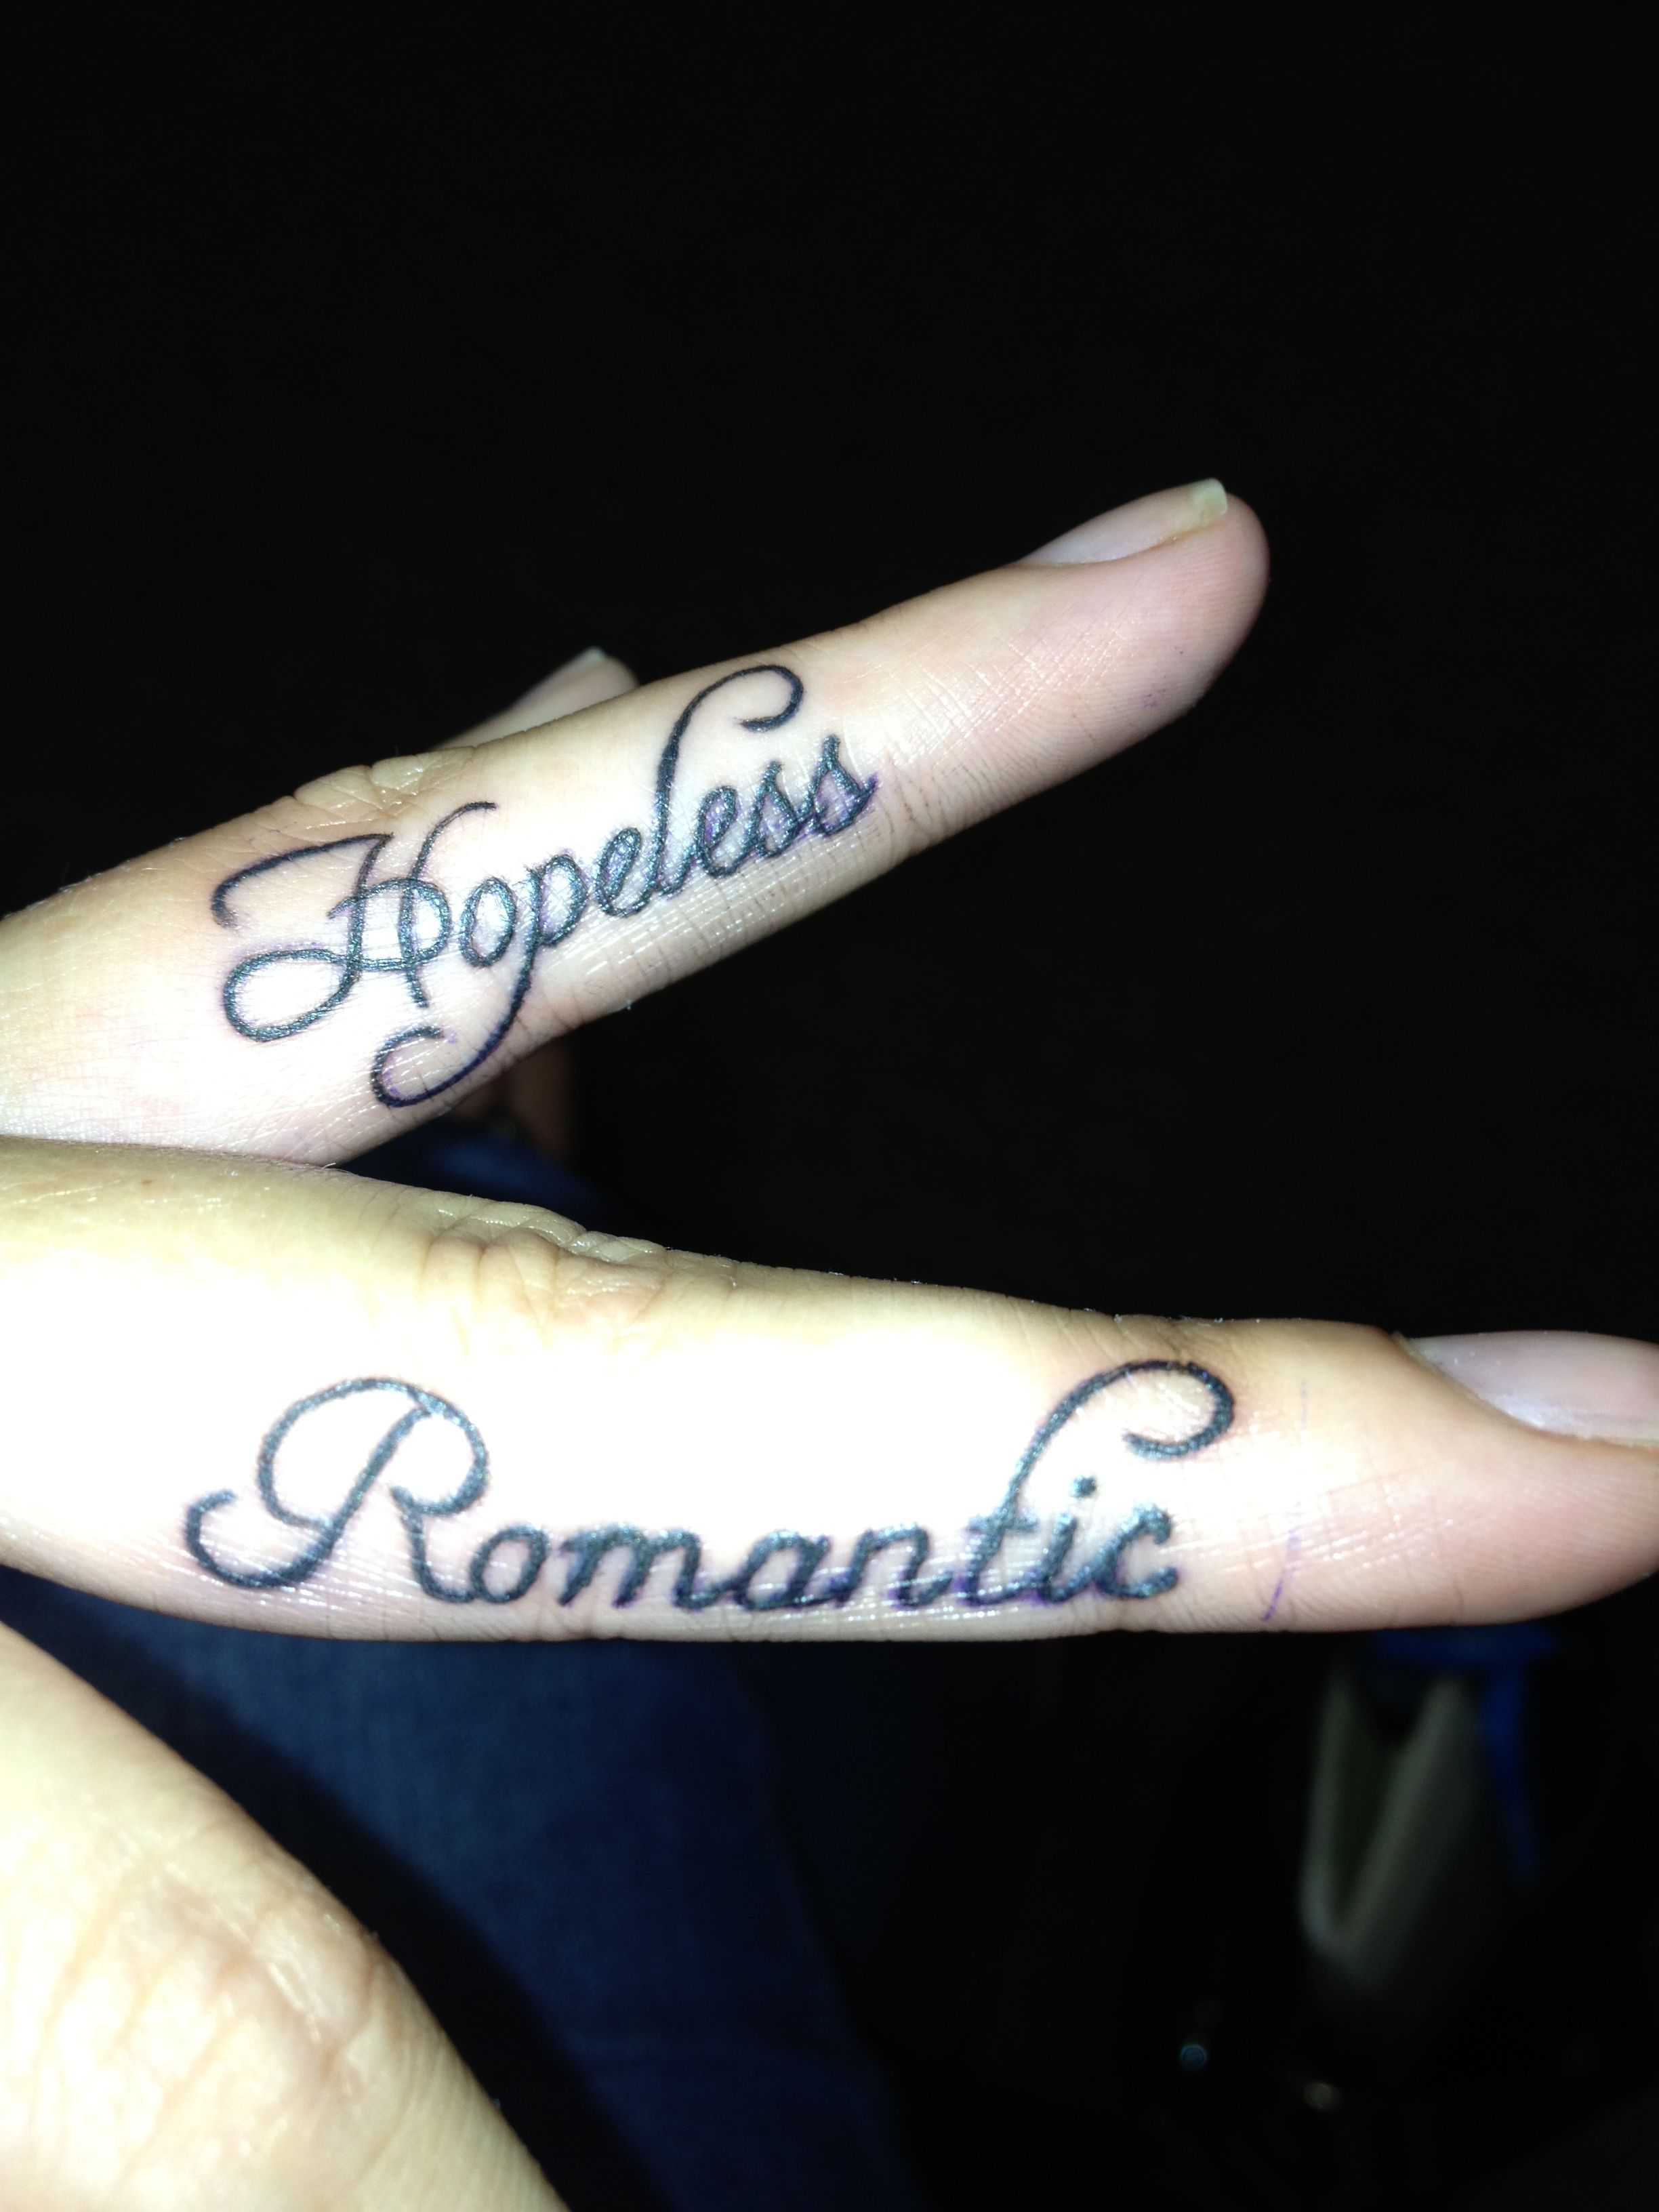 Hopeless romantic meaning